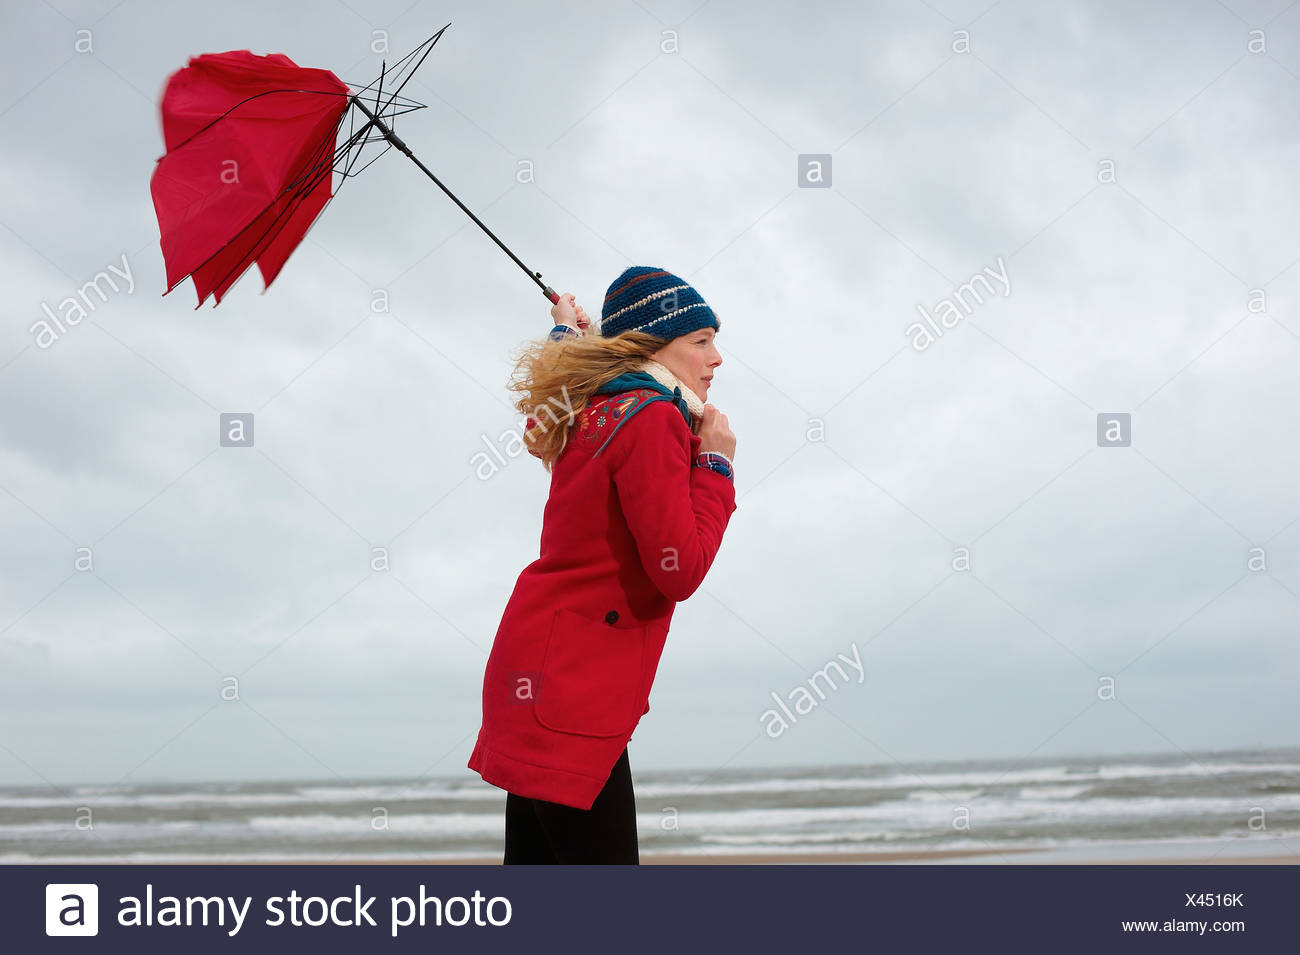 A woman standing on a beach with her umbrella blowing inside out - Stock Image